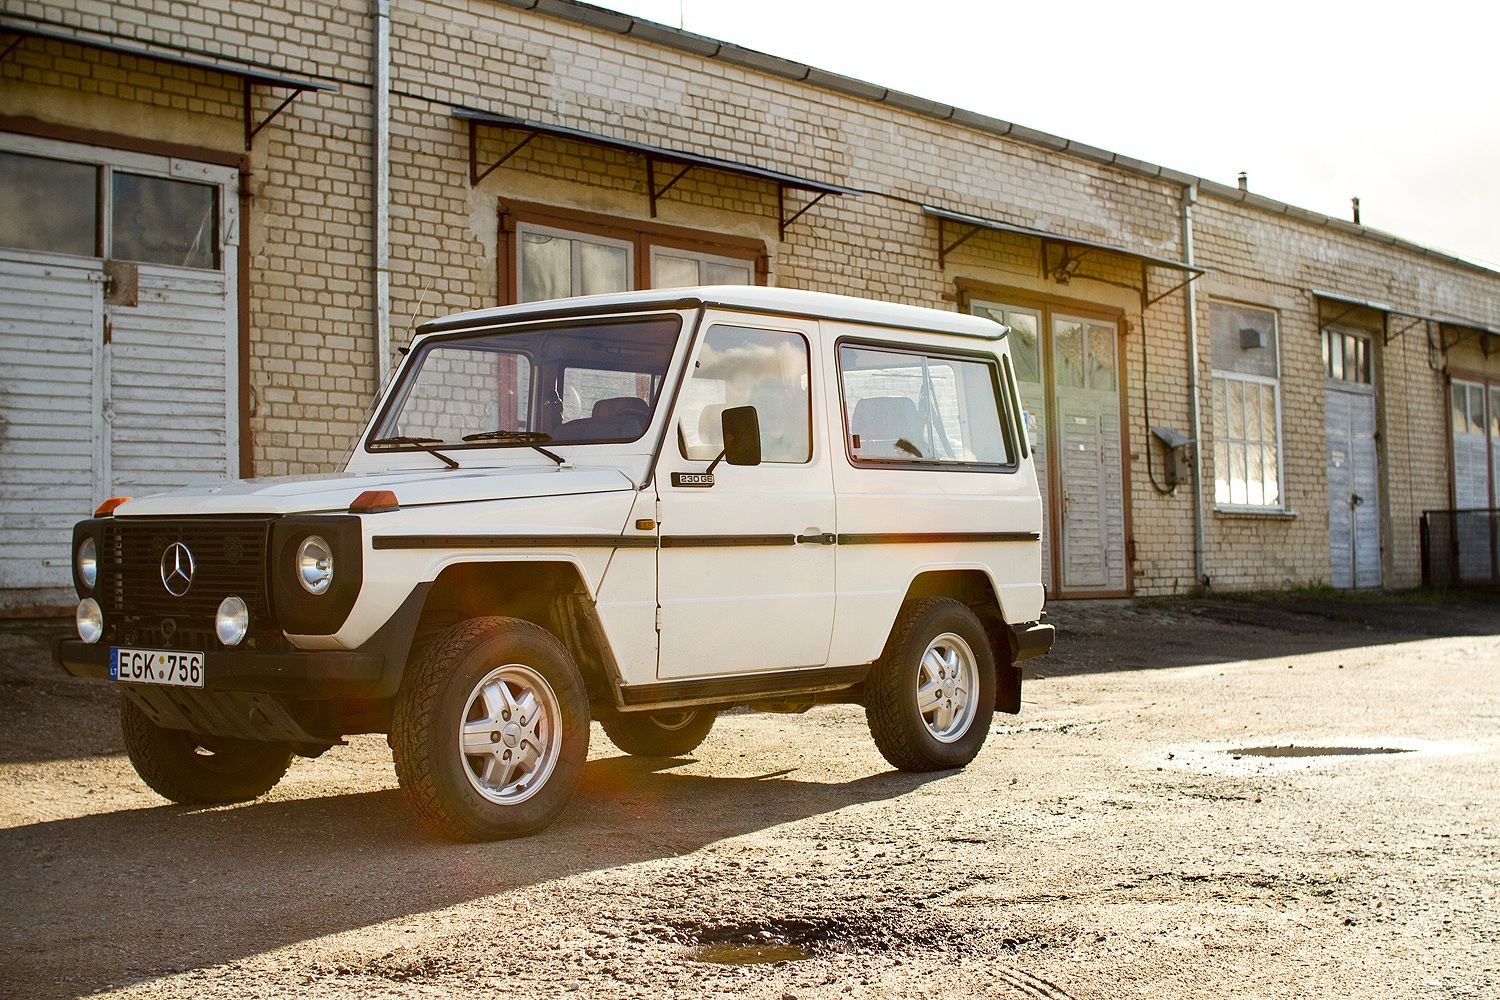 Mercedes benz 280 ge swb w460 1979 01 1990 pictures to pin - Mercedes G Wagen 230ge